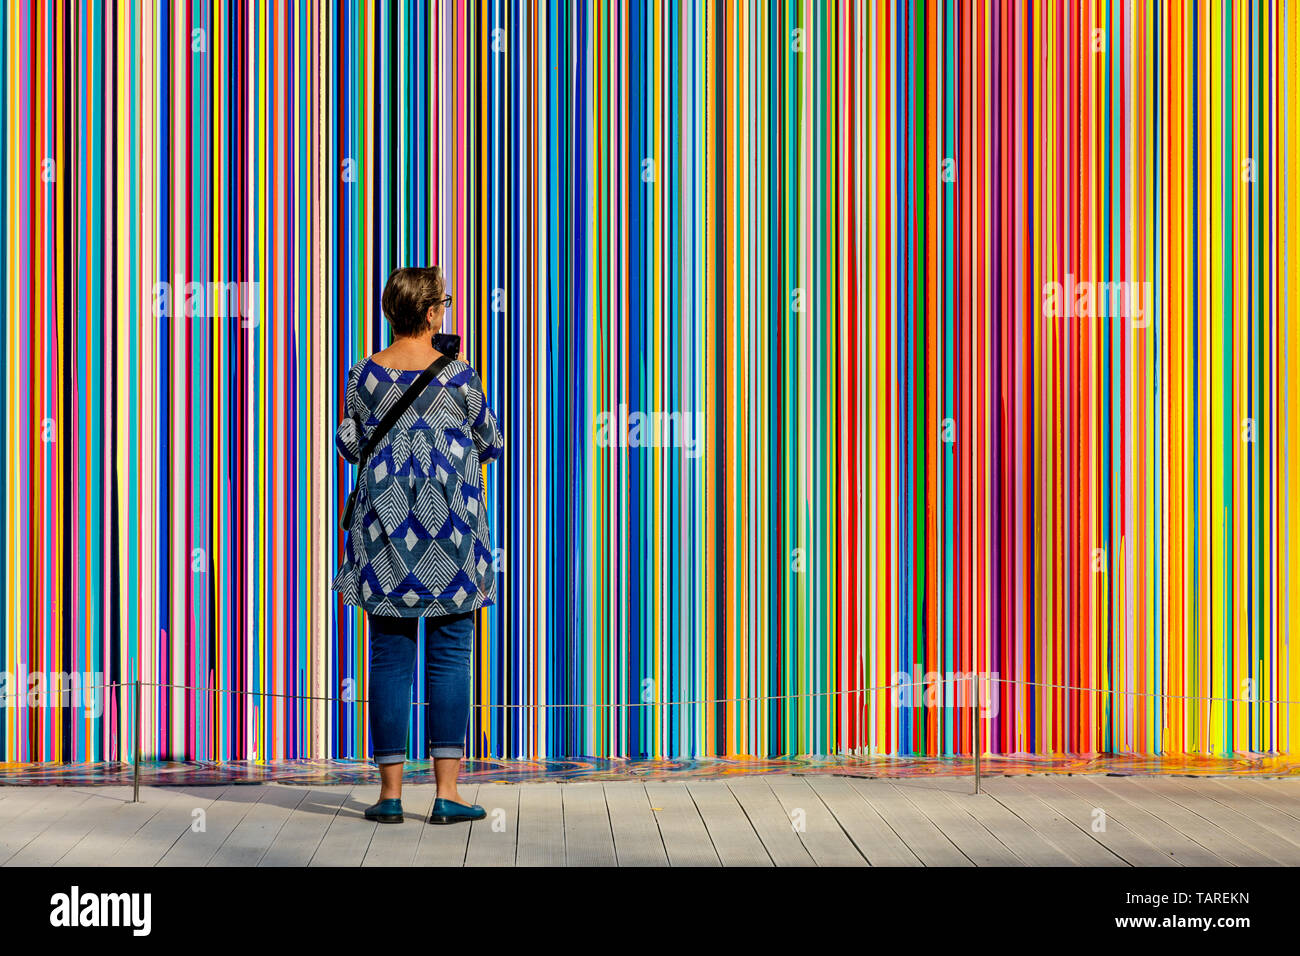 A tourist stands in front of Giardini Colourfall by artist Ian Davenport at the 2017 Venice Biennale, Venice Italy. - Stock Image